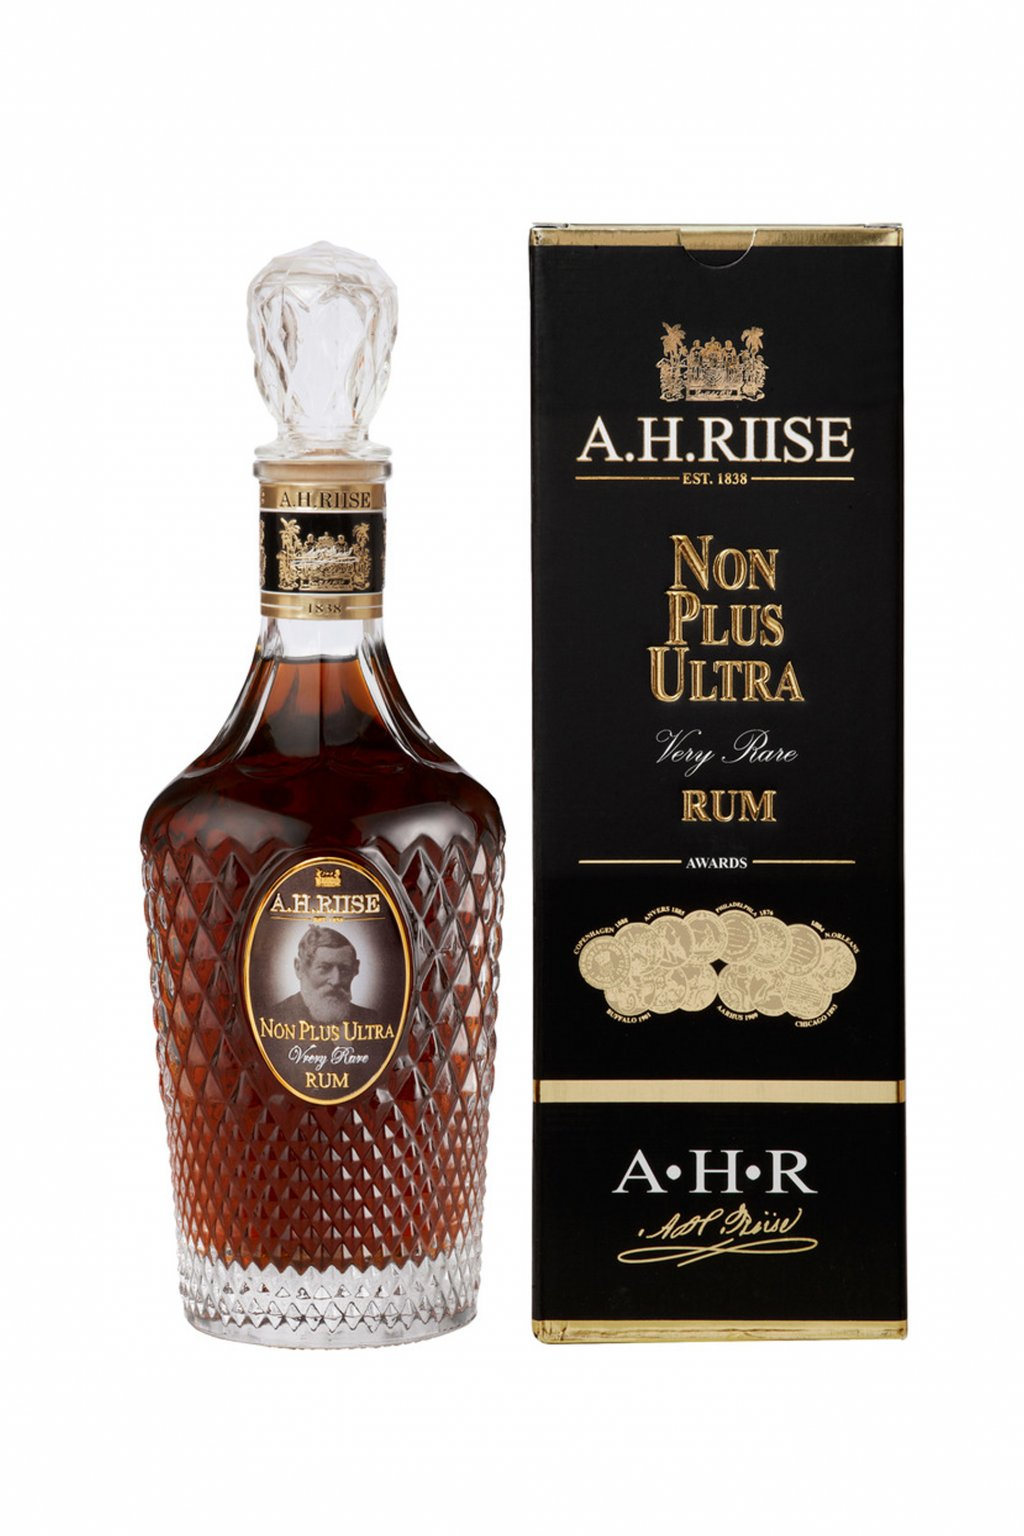 A.H. Riise non plus extra